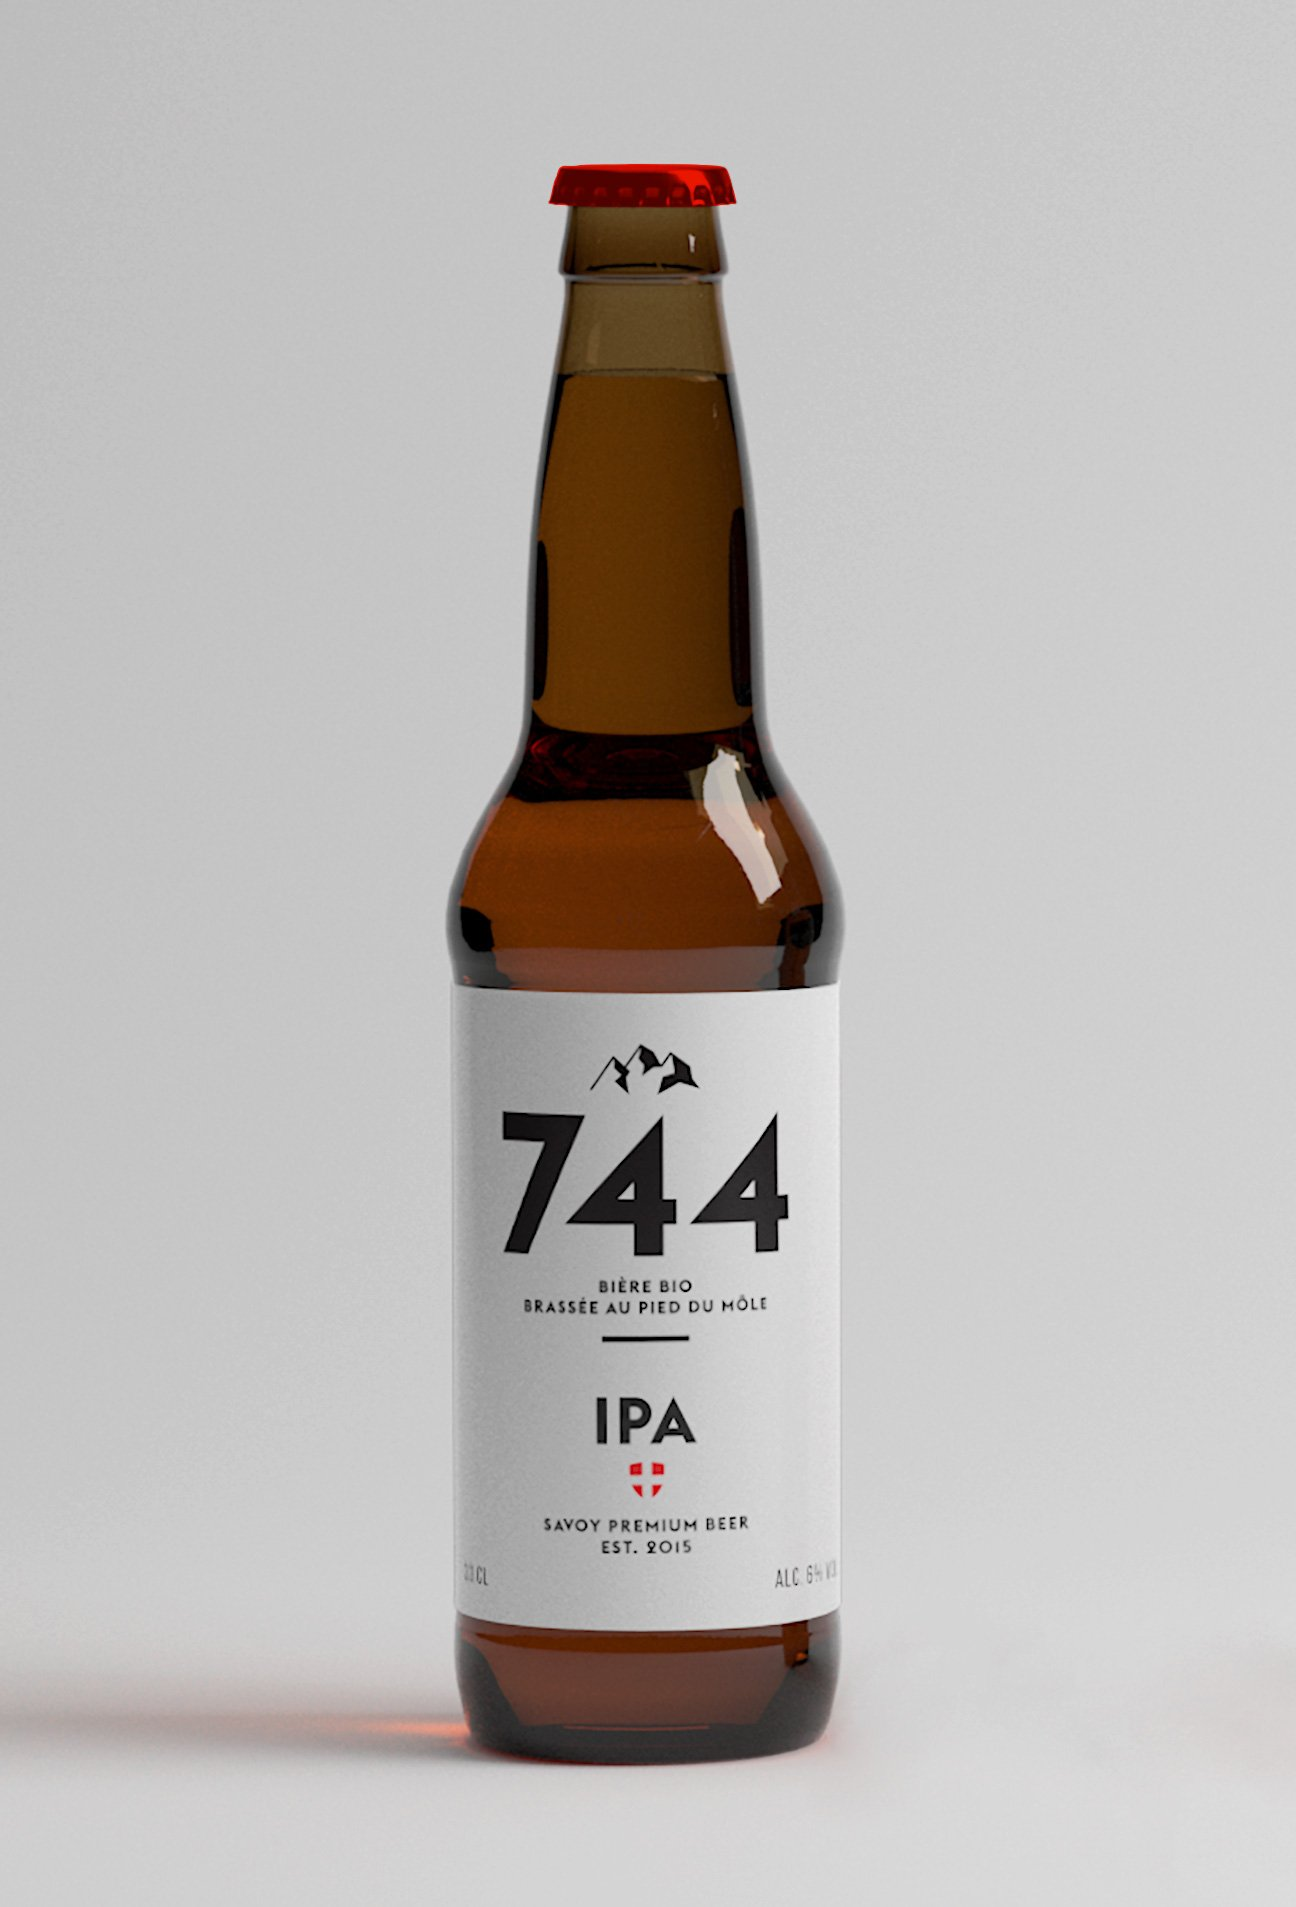 fabiencuffel_agence_communication_photographie_edition_graphisme_geneve_brasserie_744_IPA